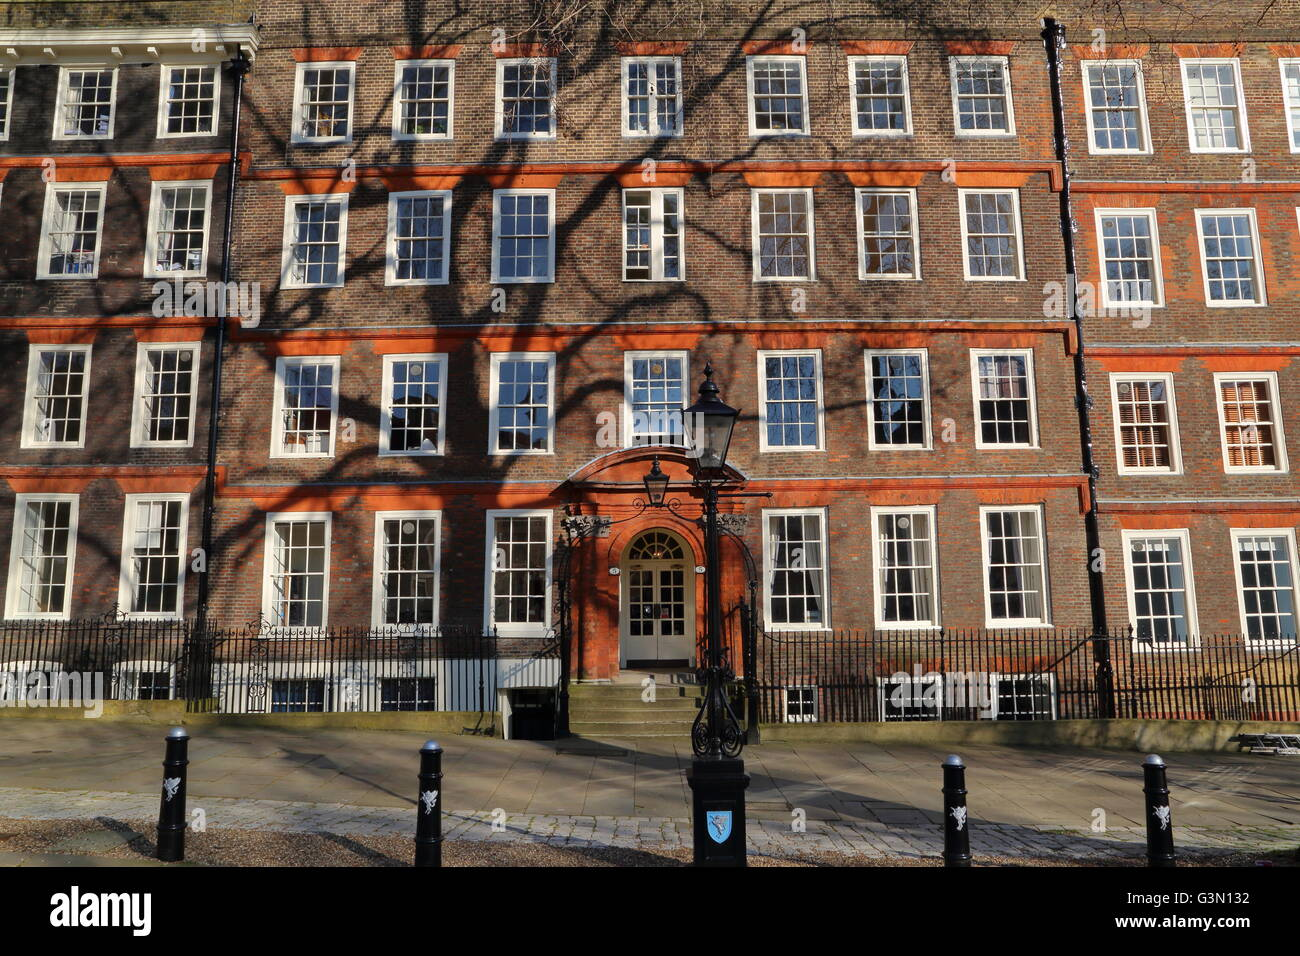 Kings Bench walk, Inner Temple, Inns of Court, Sollicitors Chambers buildings, London, Great Britain - Stock Image